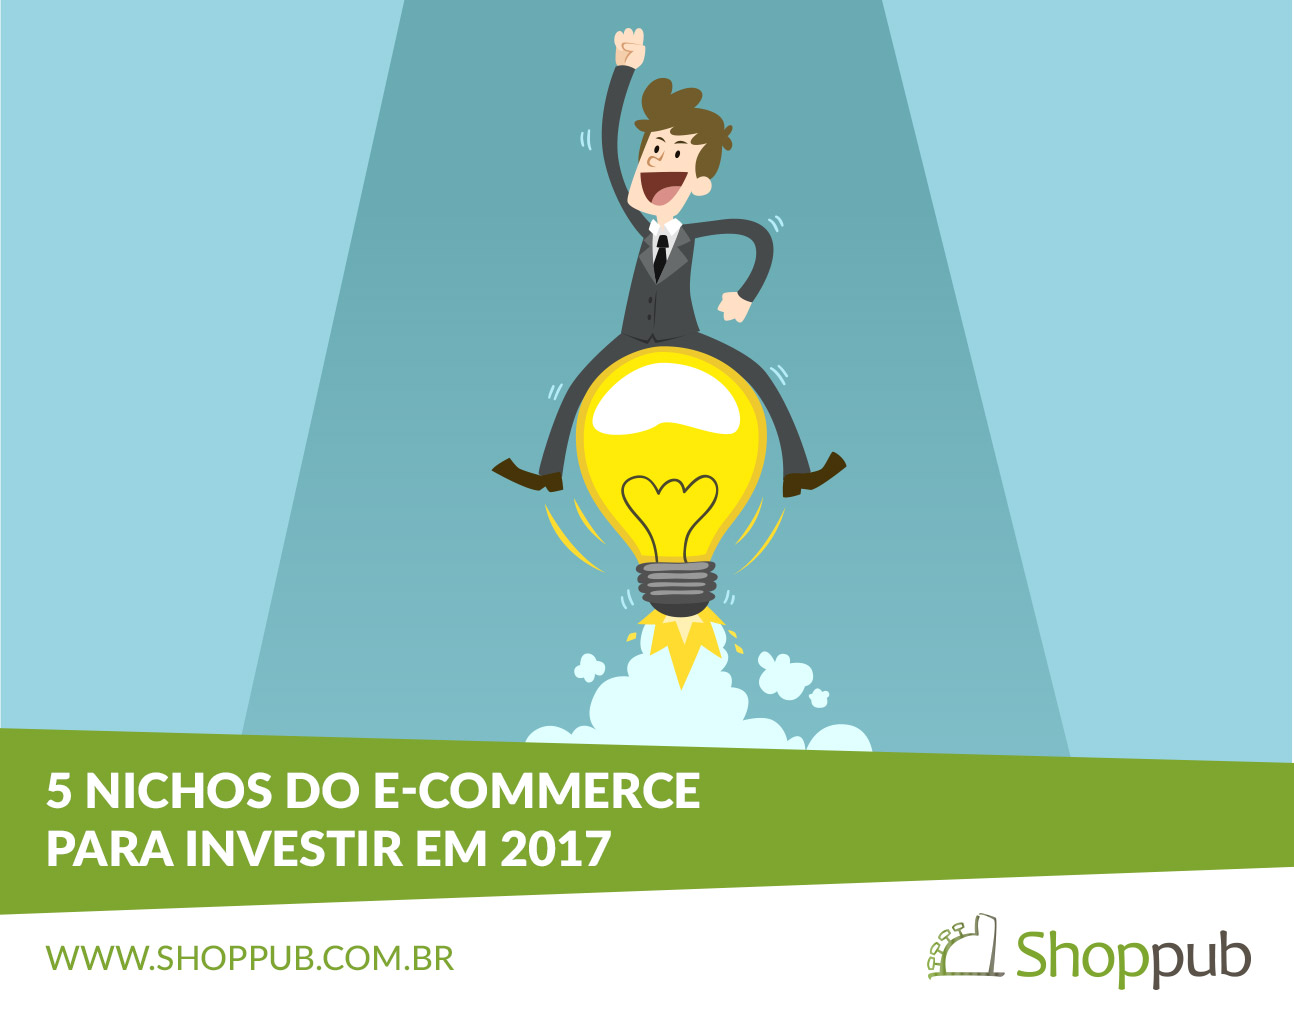 5 nichos do e-commerce para investir em 2017